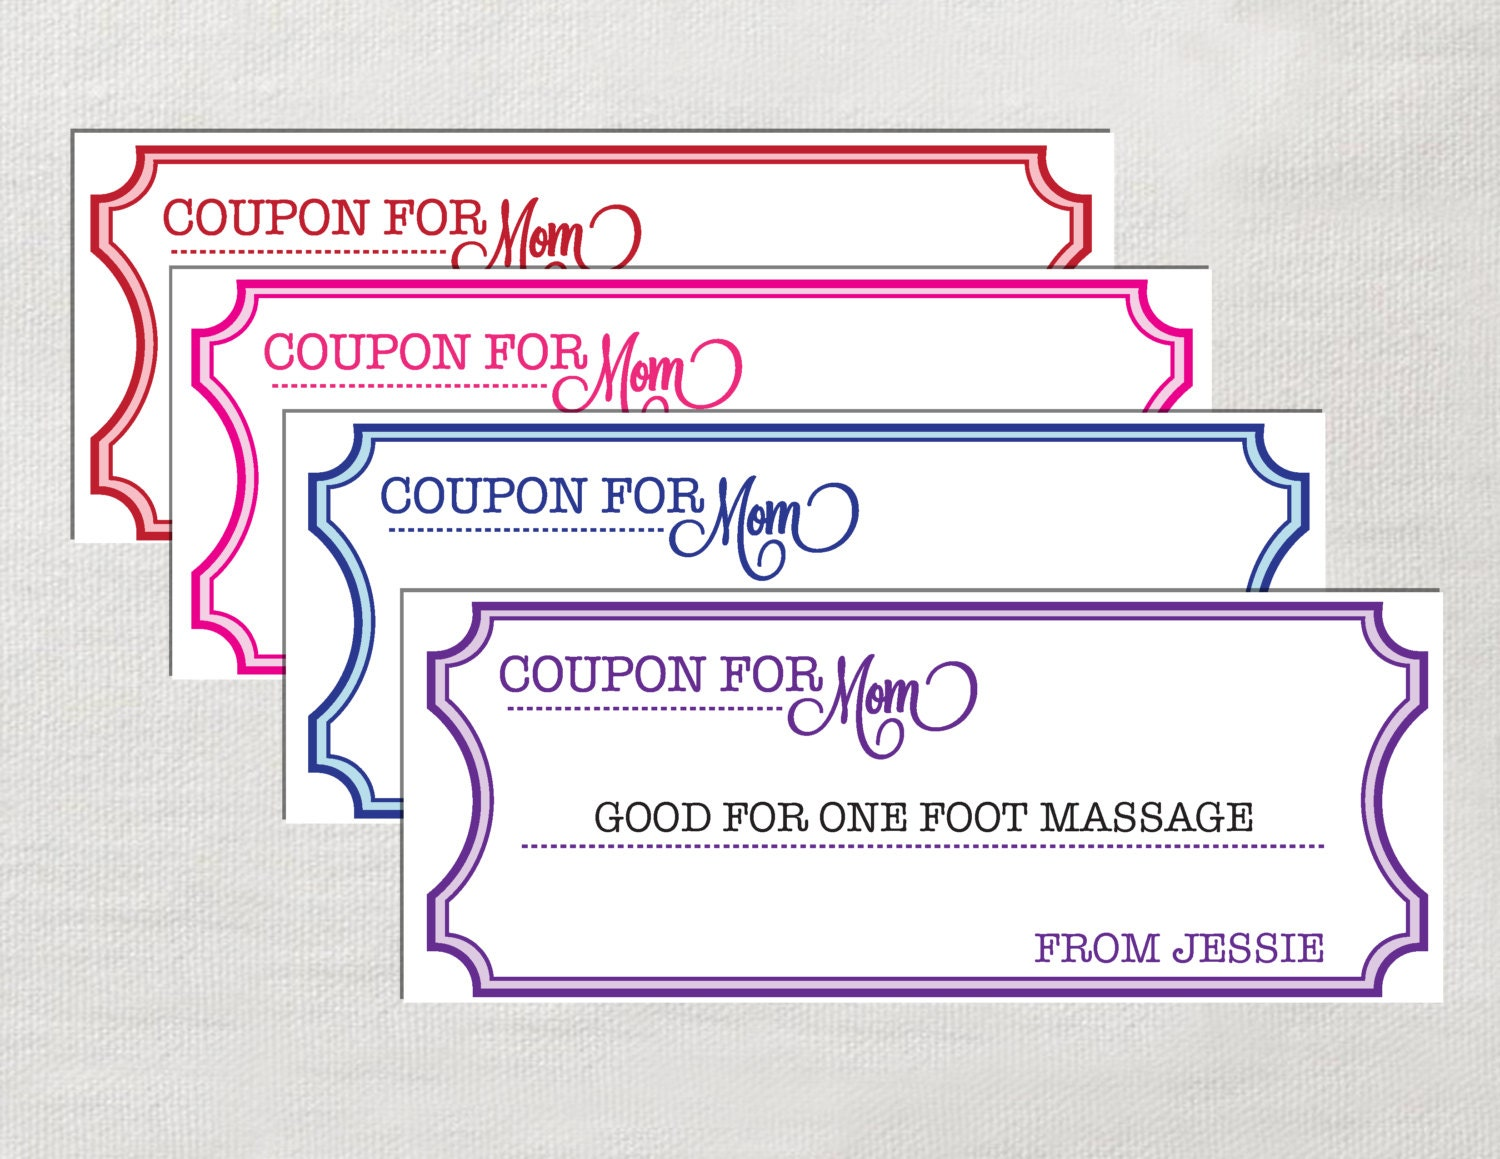 editable coupon template printable editable blank calendar  template